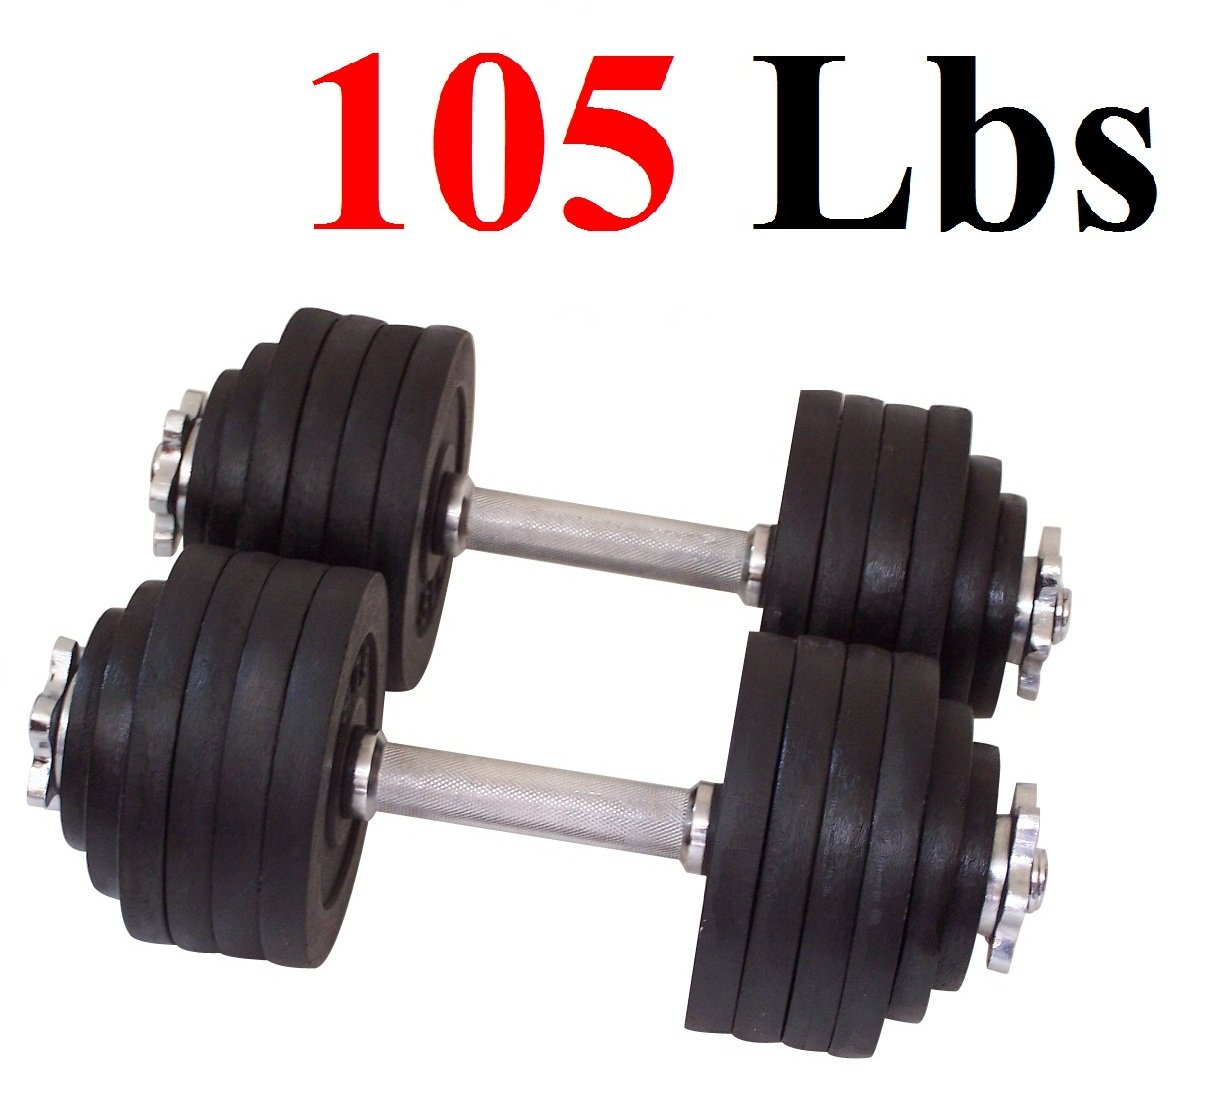 One Pair of Adjustable Dumbbells Cast Iron Total 105 Lbs (2 X 52.5 Lbs) by Unipack by Unipack